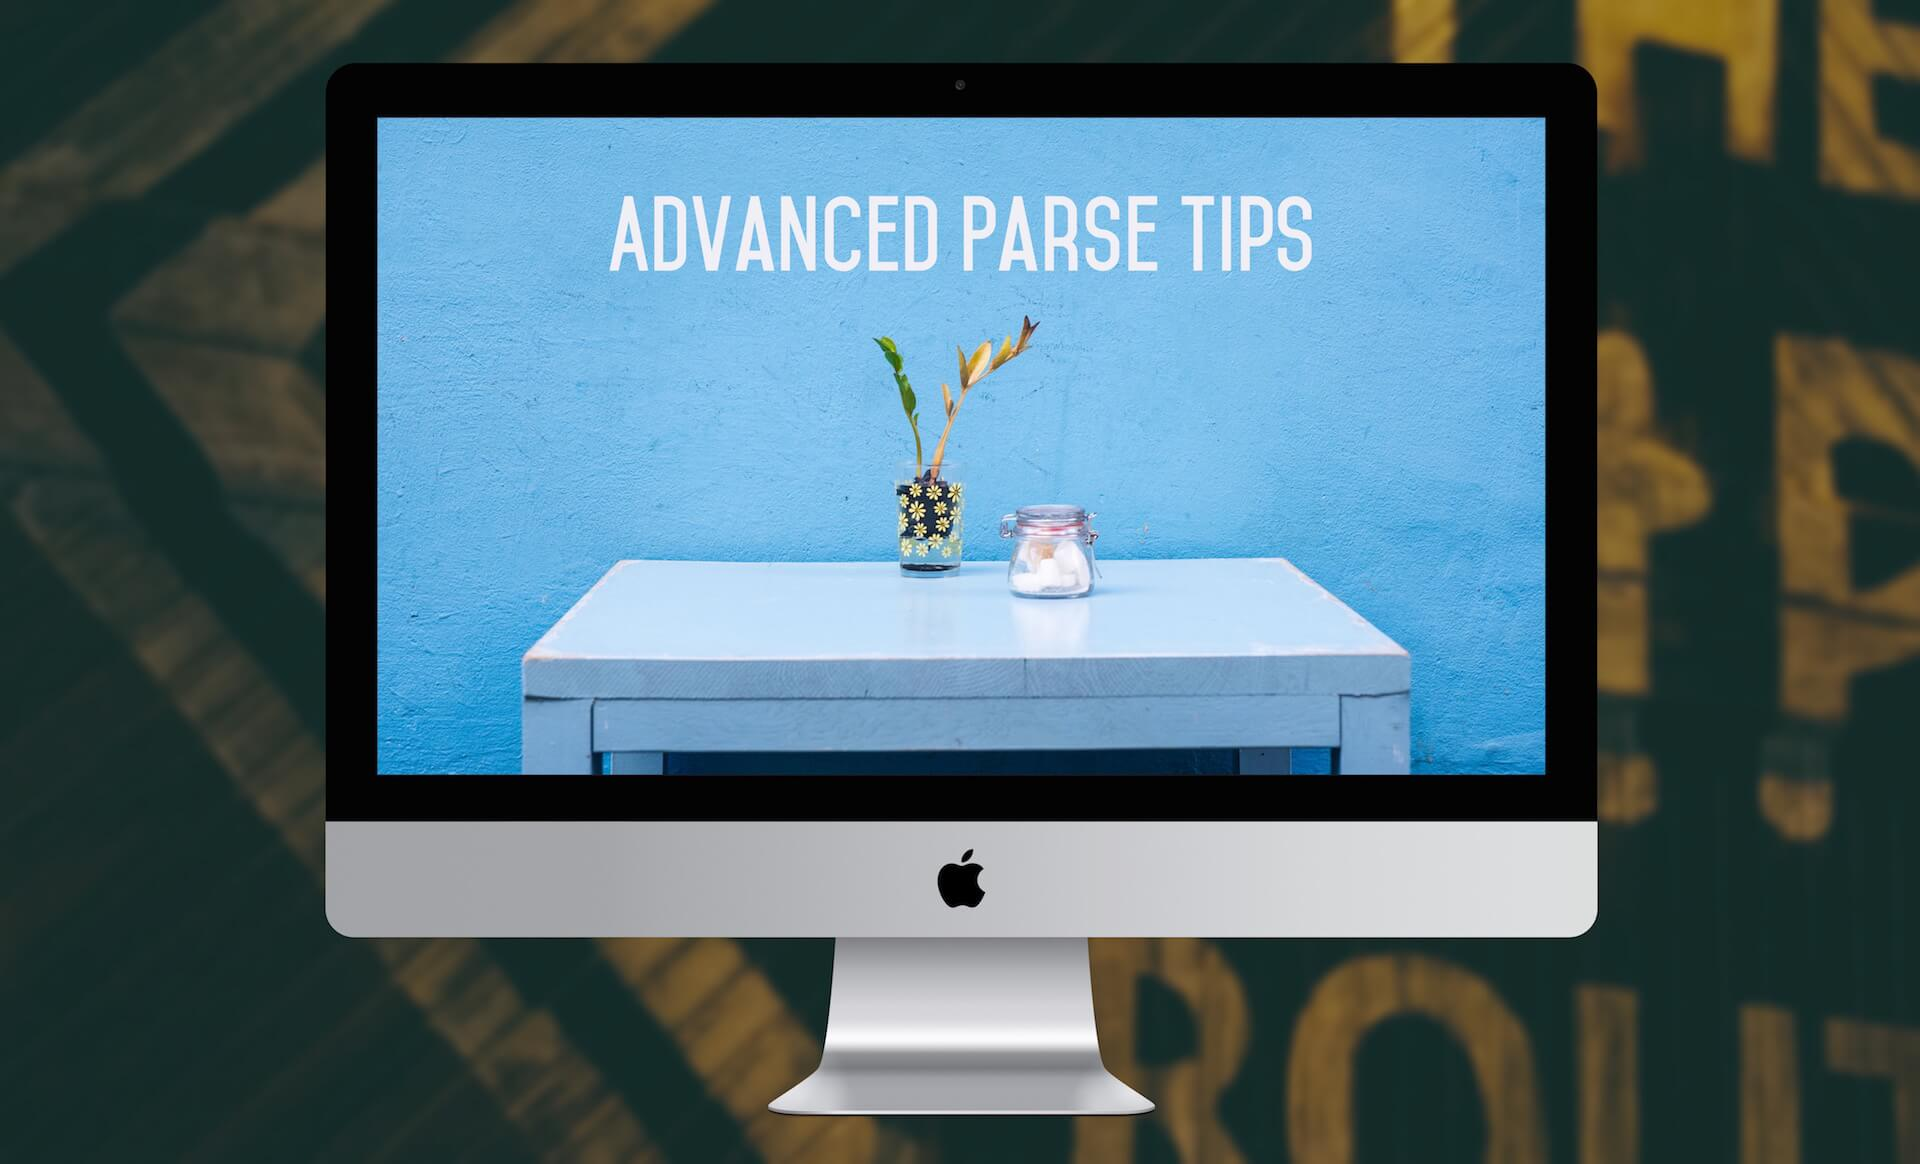 Advanced Parse Tips: PFObject Subclassing, Caching, ACL and